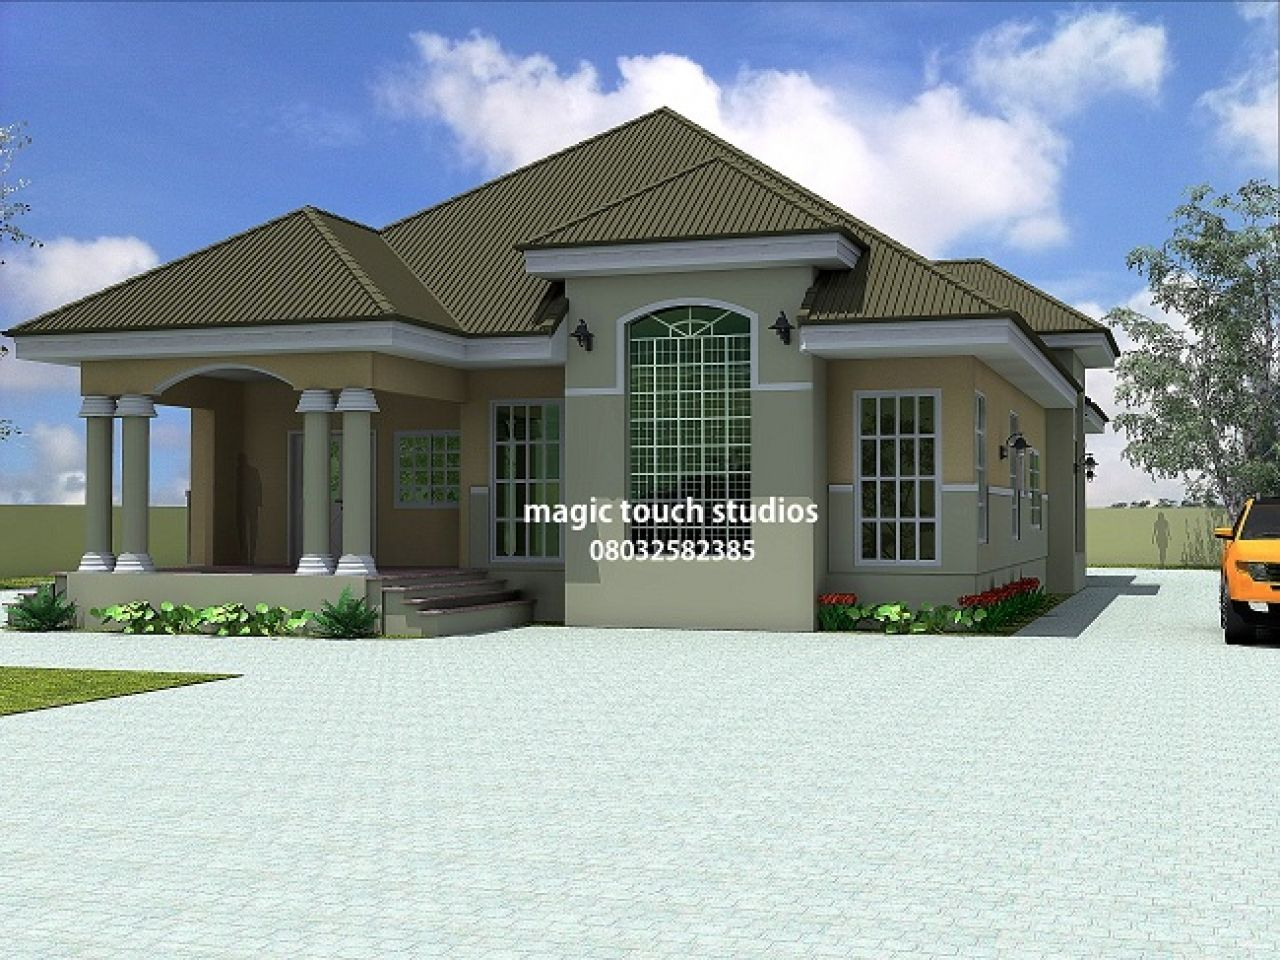 10 Bungalow House Plans To Impress Beautiful House Plans Modern